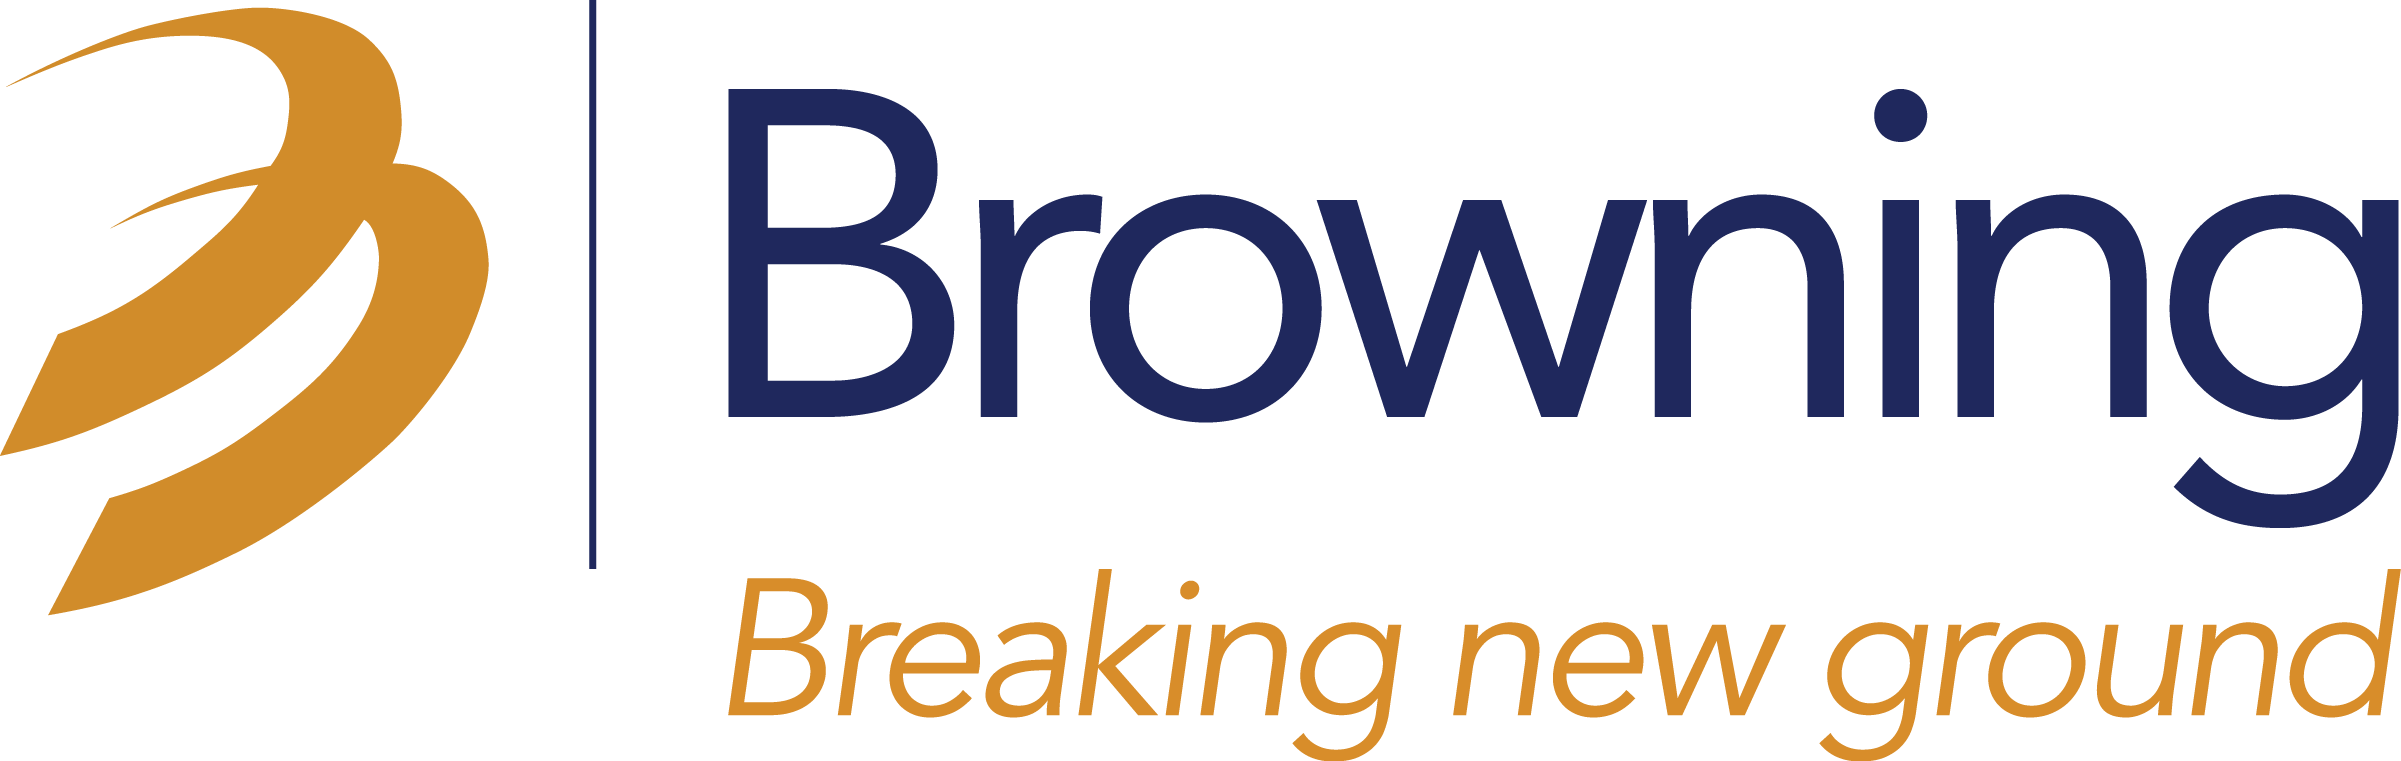 Browning Investments logo